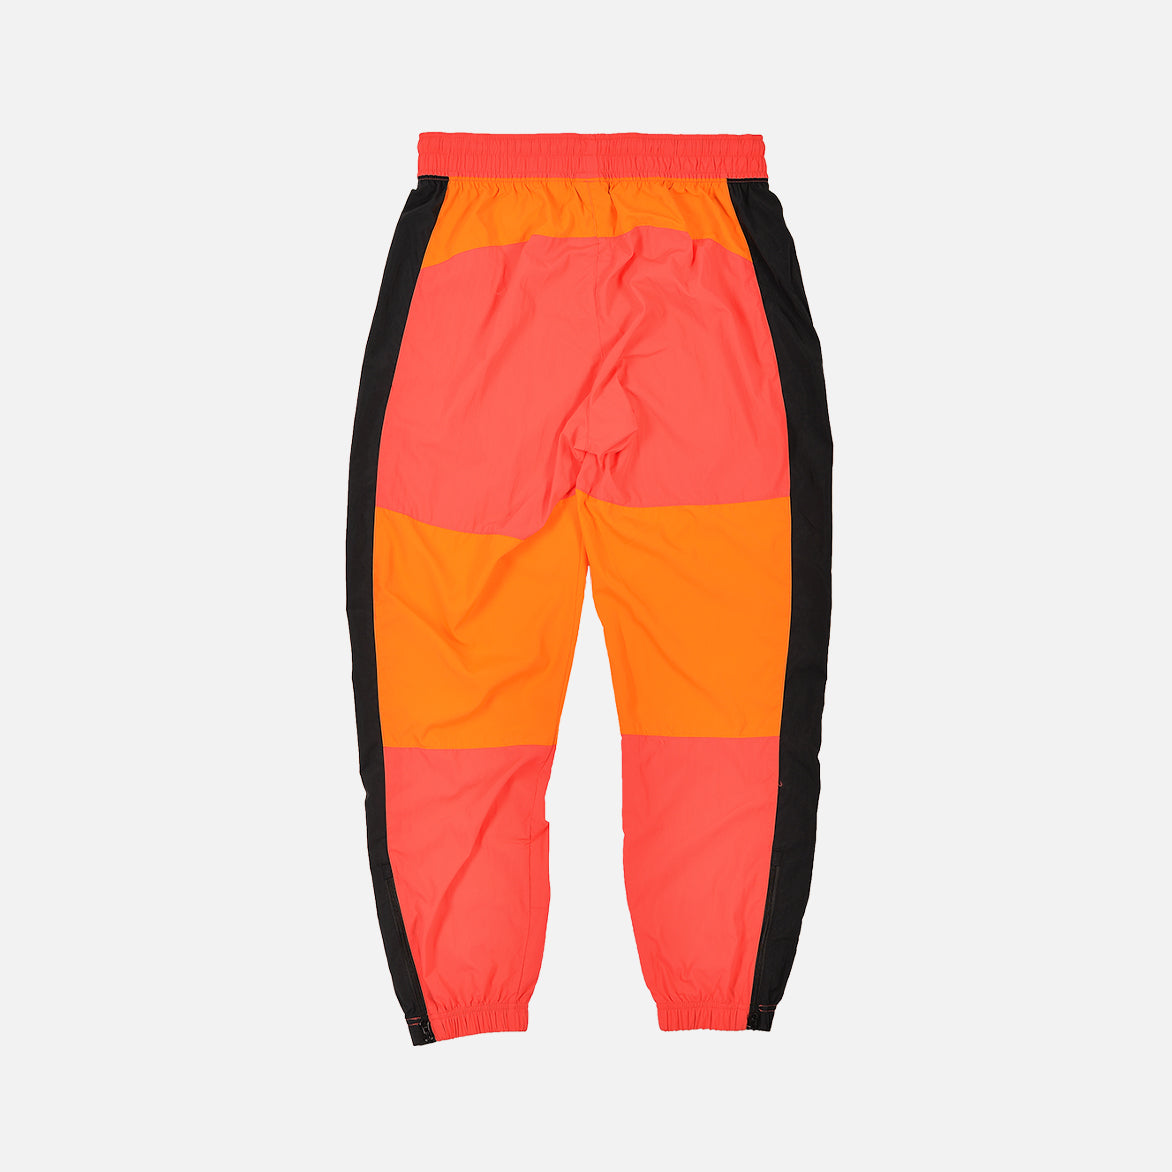 NSW TRACK PANTS - EMBER GLOW / BRIGHT CERAMIC